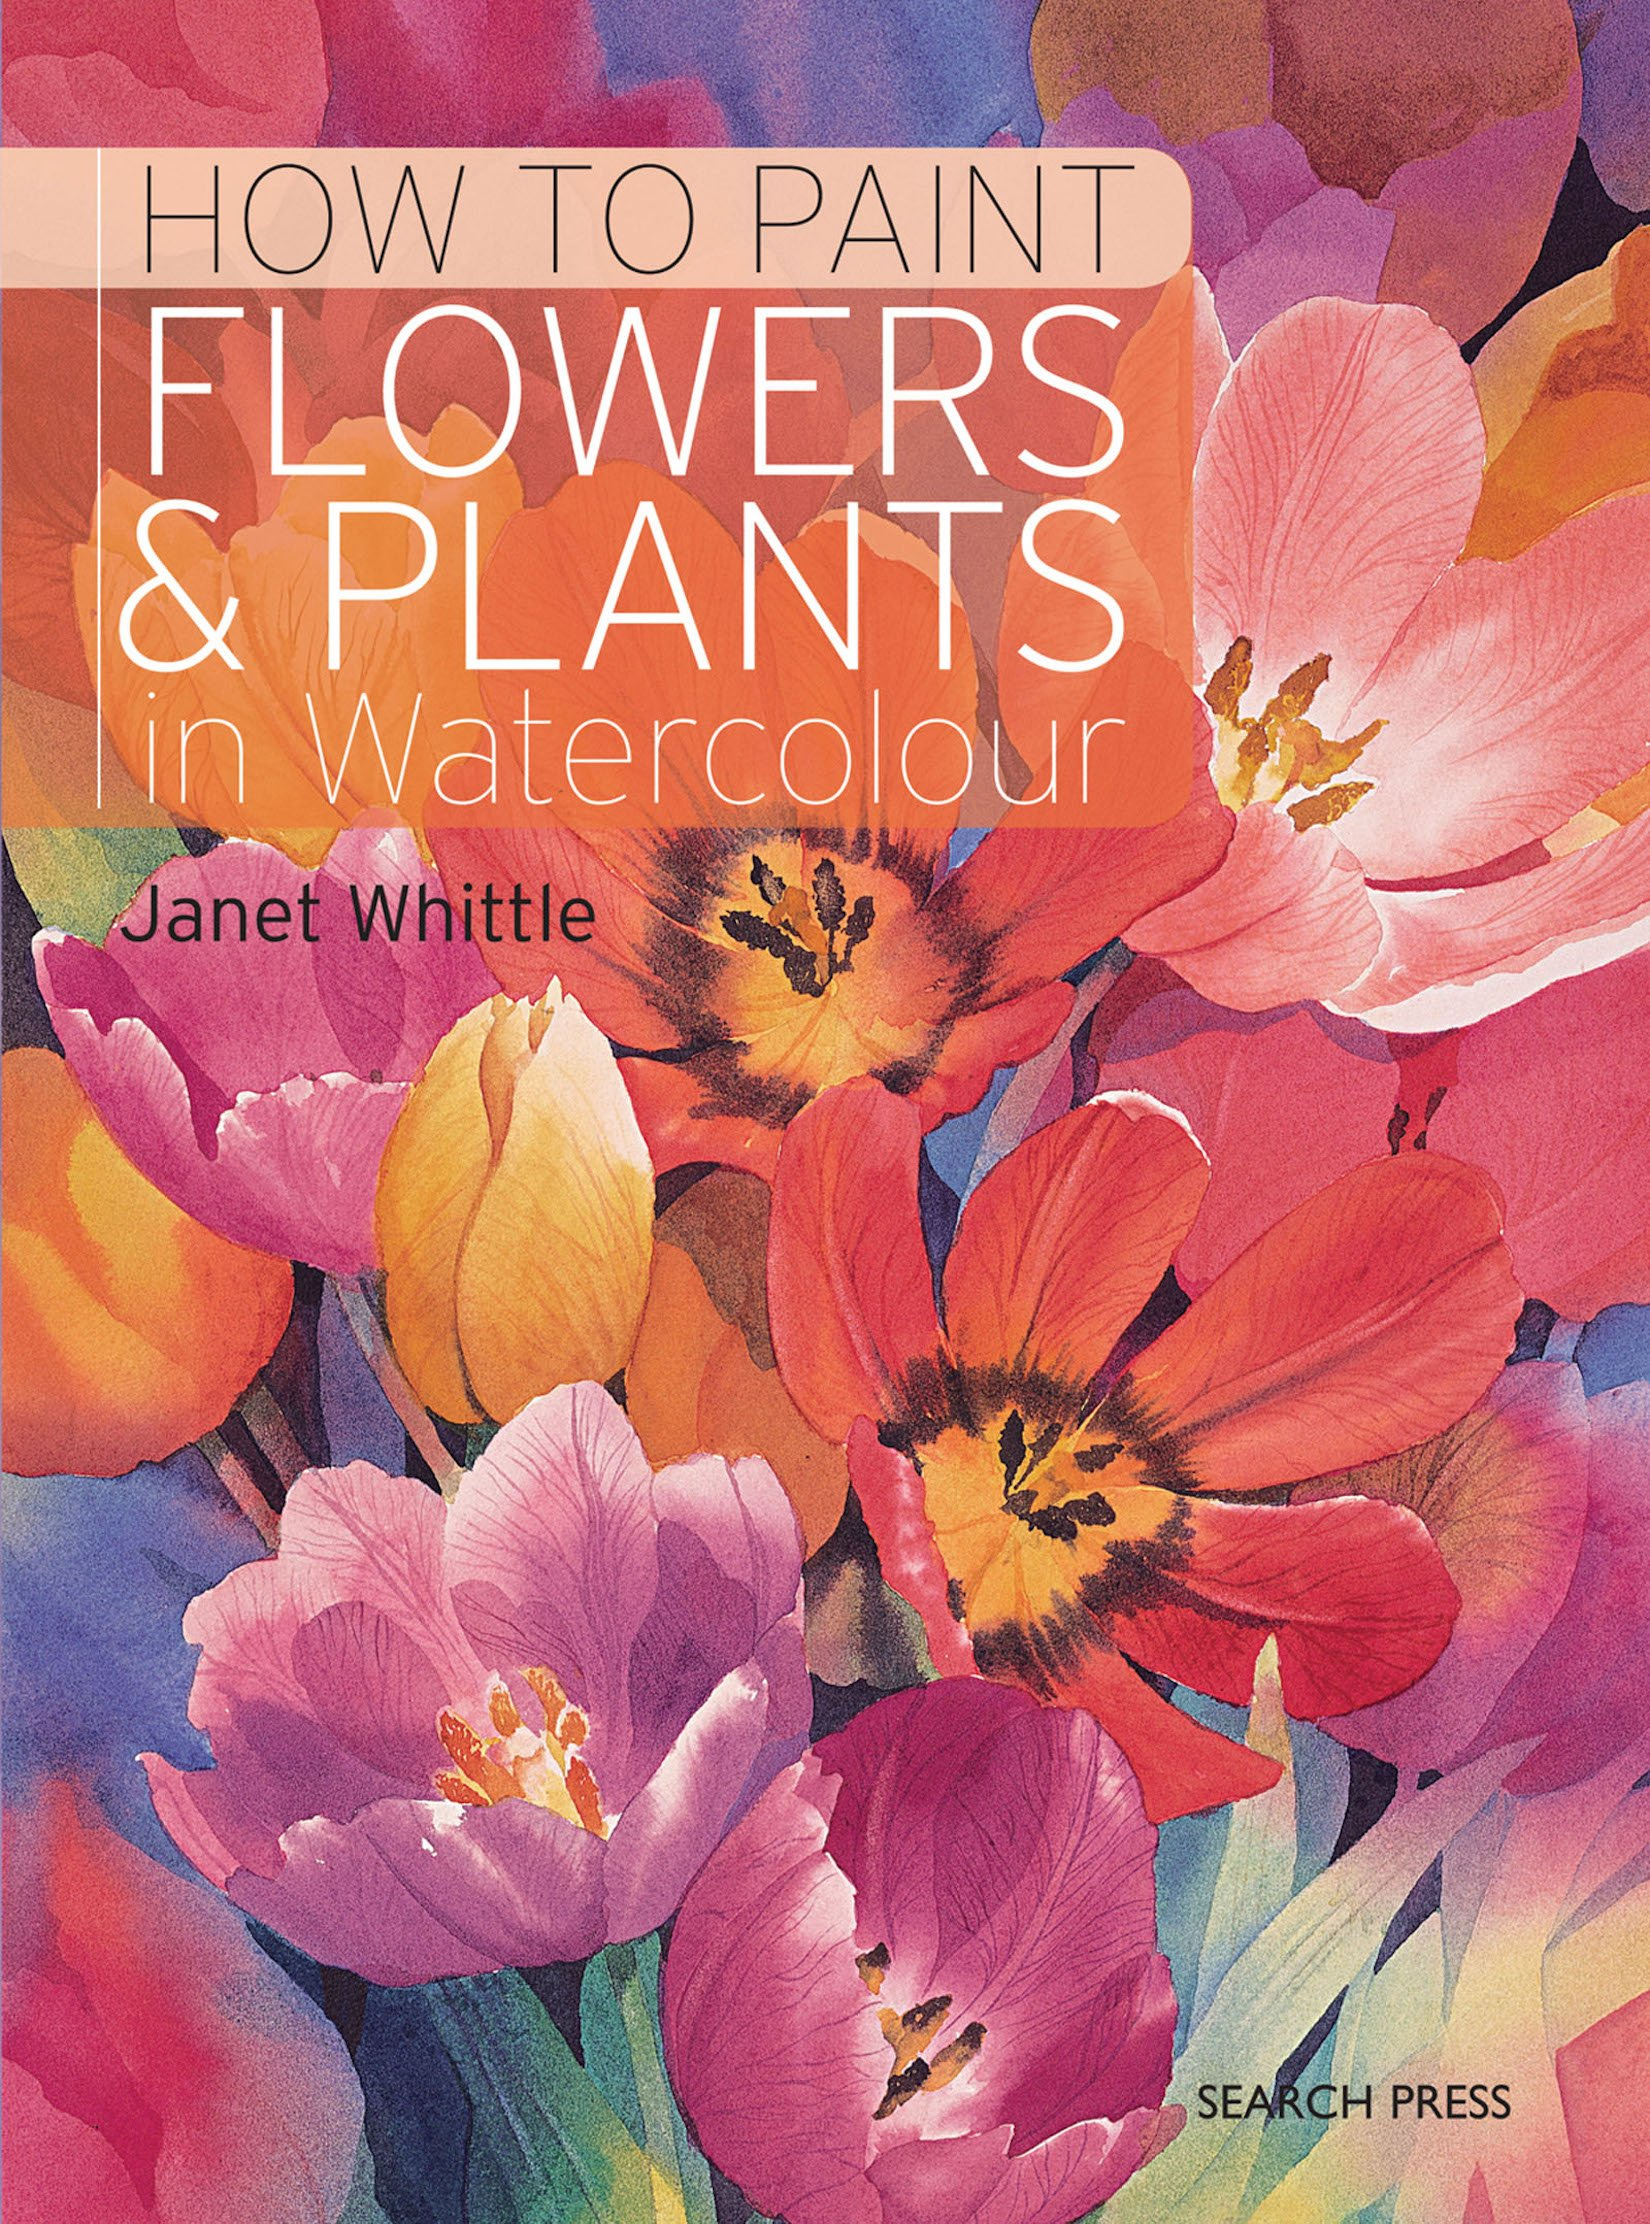 Watercolor books by search press - How To Paint Flowers Plants In Watercolour Janet Whittle 9781782214182 Amazon Com Books